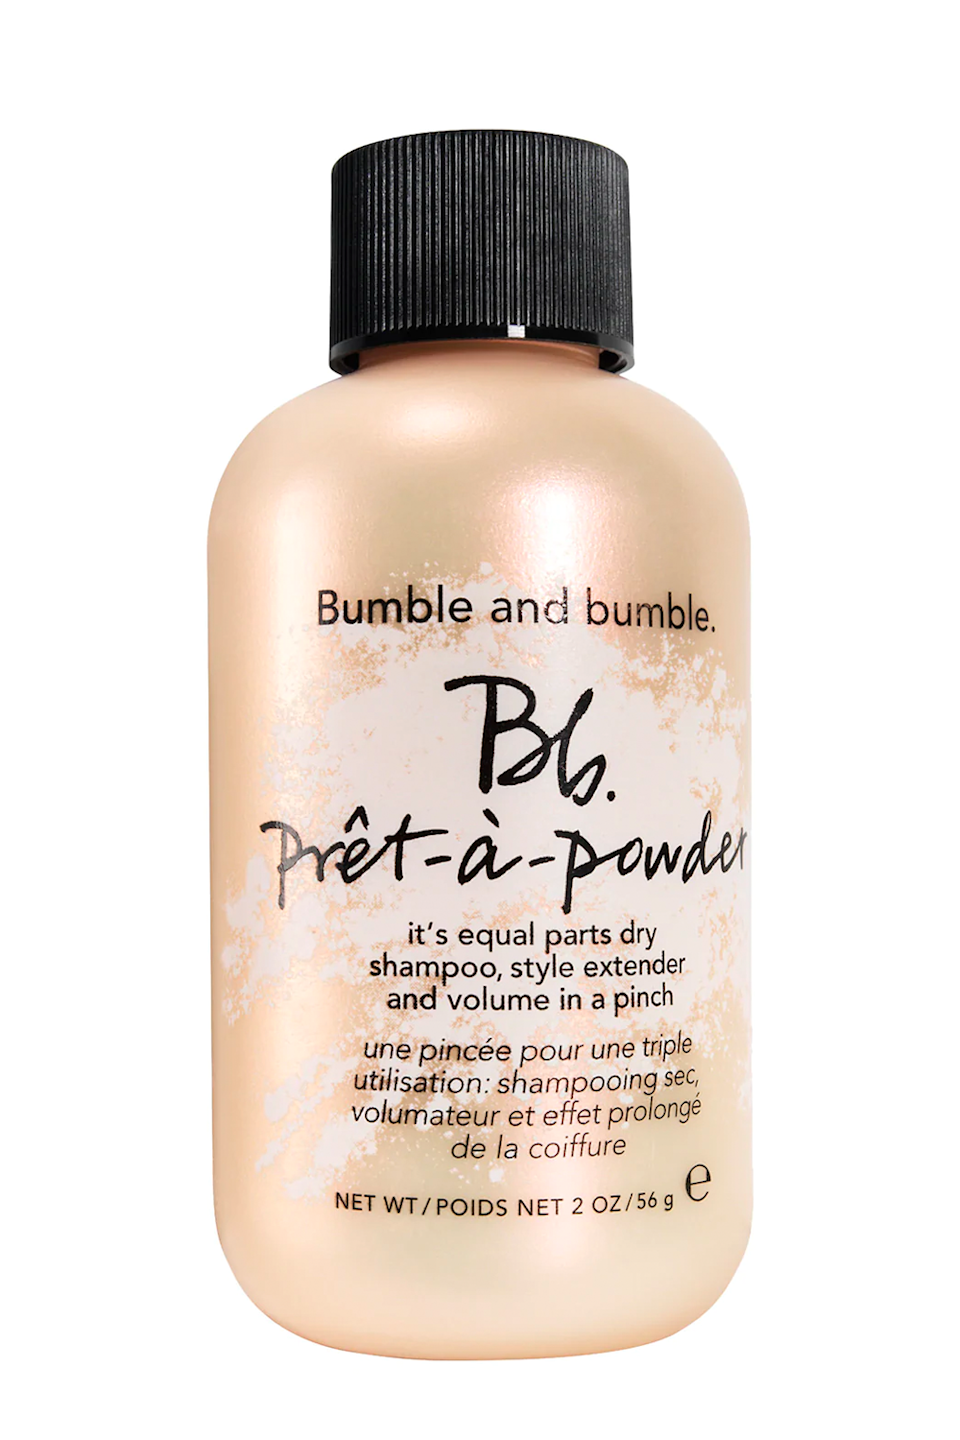 """<p><strong>Bumble and bumble</strong></p><p><strong>$28.00</strong></p><p><a href=""""https://go.redirectingat.com?id=74968X1596630&url=https%3A%2F%2Fwww.ulta.com%2Fbbpret-a-powder%3FproductId%3DxlsImpprod16451080&sref=https%3A%2F%2Fwww.cosmopolitan.com%2Fstyle-beauty%2Fbeauty%2Fg34362098%2Fbest-hair-volumizing-powder%2F"""" rel=""""nofollow noopener"""" target=""""_blank"""" data-ylk=""""slk:Shop Now"""" class=""""link rapid-noclick-resp"""">Shop Now</a></p><p>Remember when I said volume powder can multitask as <a href=""""https://www.cosmopolitan.com/style-beauty/beauty/g30570039/best-drugstore-dry-shampoo/"""" rel=""""nofollow noopener"""" target=""""_blank"""" data-ylk=""""slk:dry shampoo"""" class=""""link rapid-noclick-resp"""">dry shampoo</a>? This cult-favorite powder from Bumble and Bumble is the perfect example. <strong>Blend it into your roots when your hair looks a little greasy or flat</strong>, and the starchy, oil-absorbing formula will give it plenty of life (read: volume on volume).</p>"""